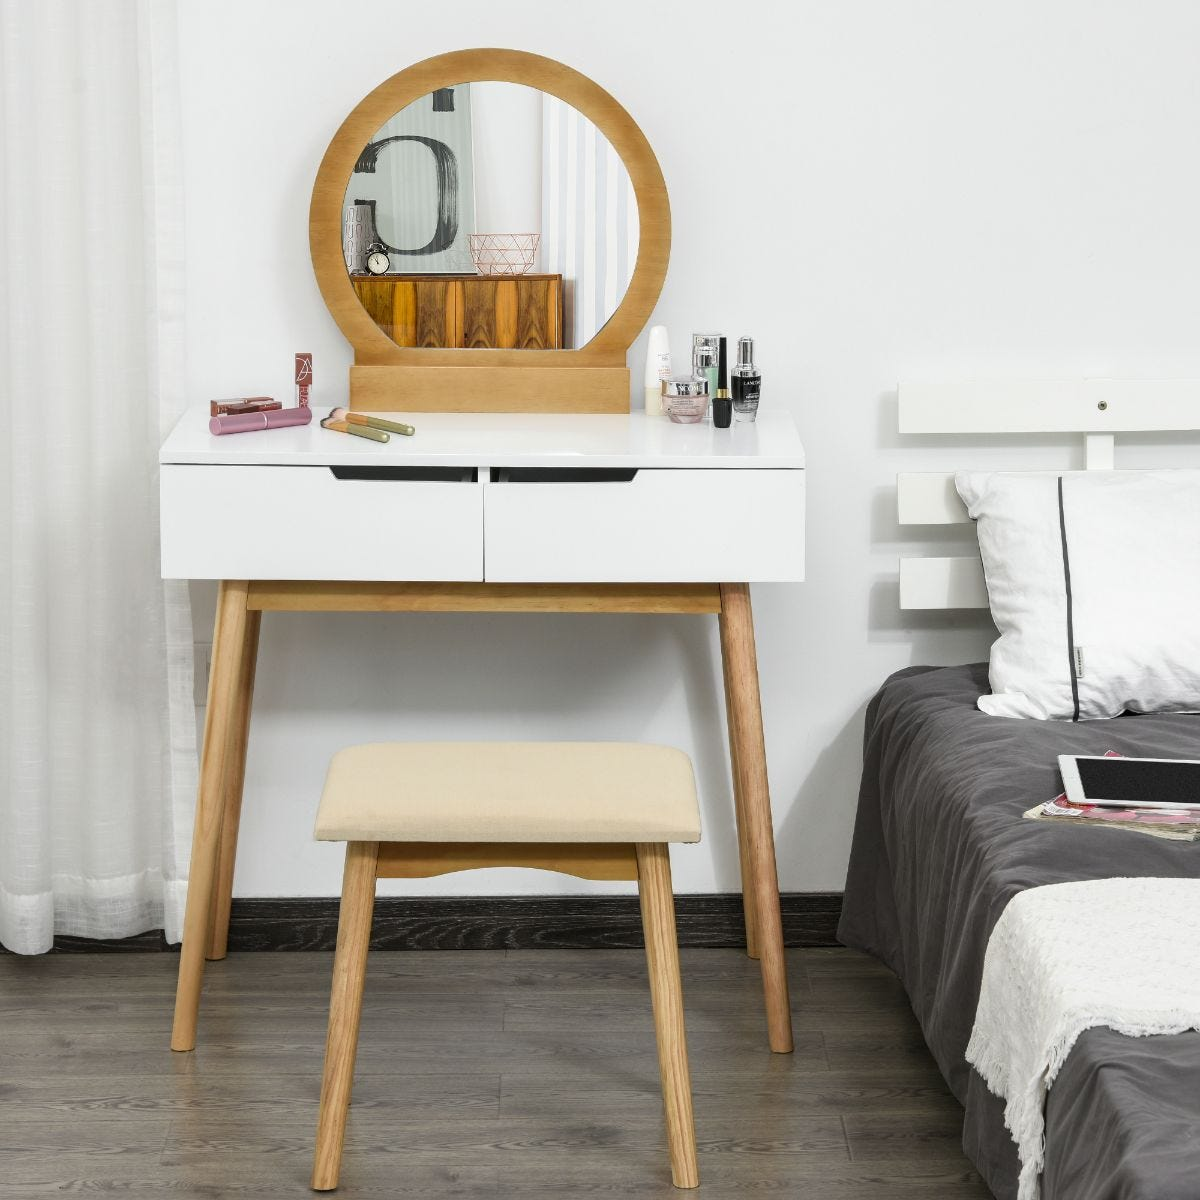 Two Piece Dressing Table And Stool Set With Drawers And Mirror White And Natural Wood